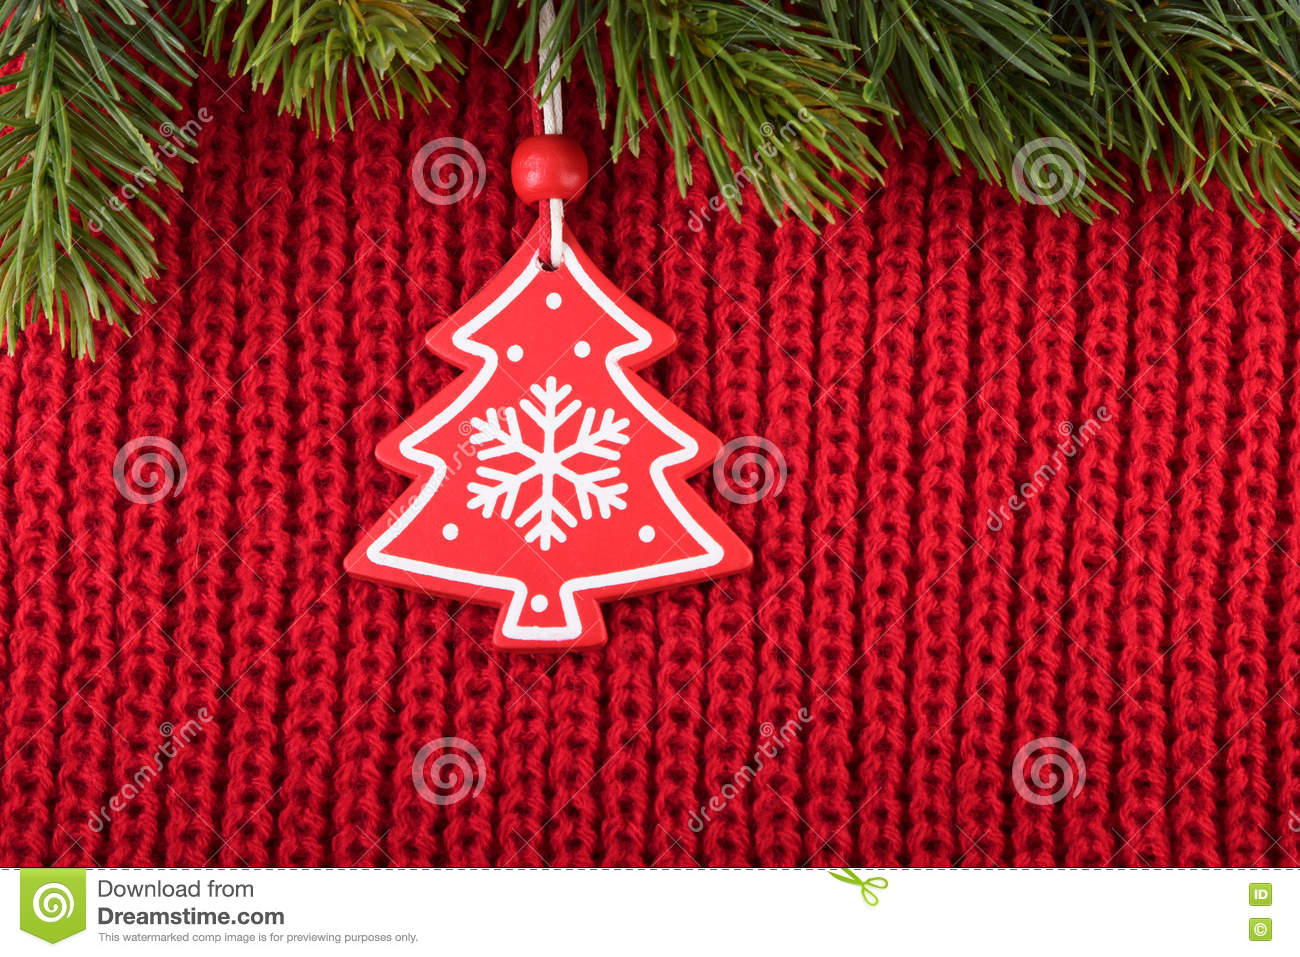 Download Christmas Tree Decoration On Red Wool Background In A Farmhouse Style Stock Image